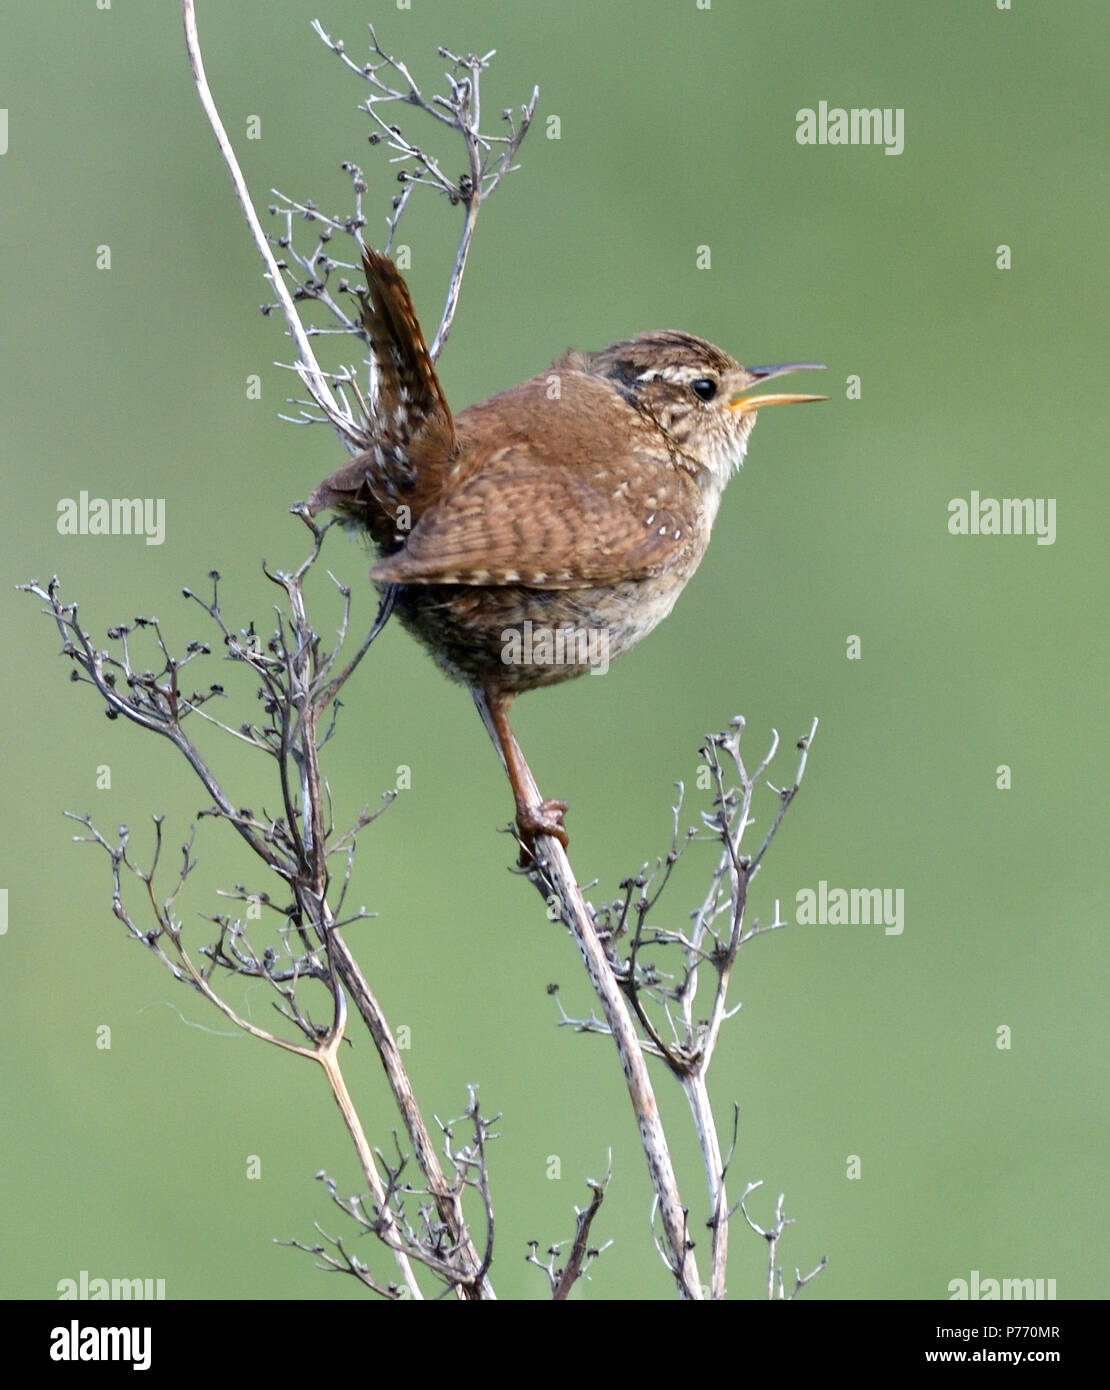 A wren (Troglodytes troglodytes) singing on dry plant stem. Ballycastle, Antrim, Northern Ireland. - Stock Image